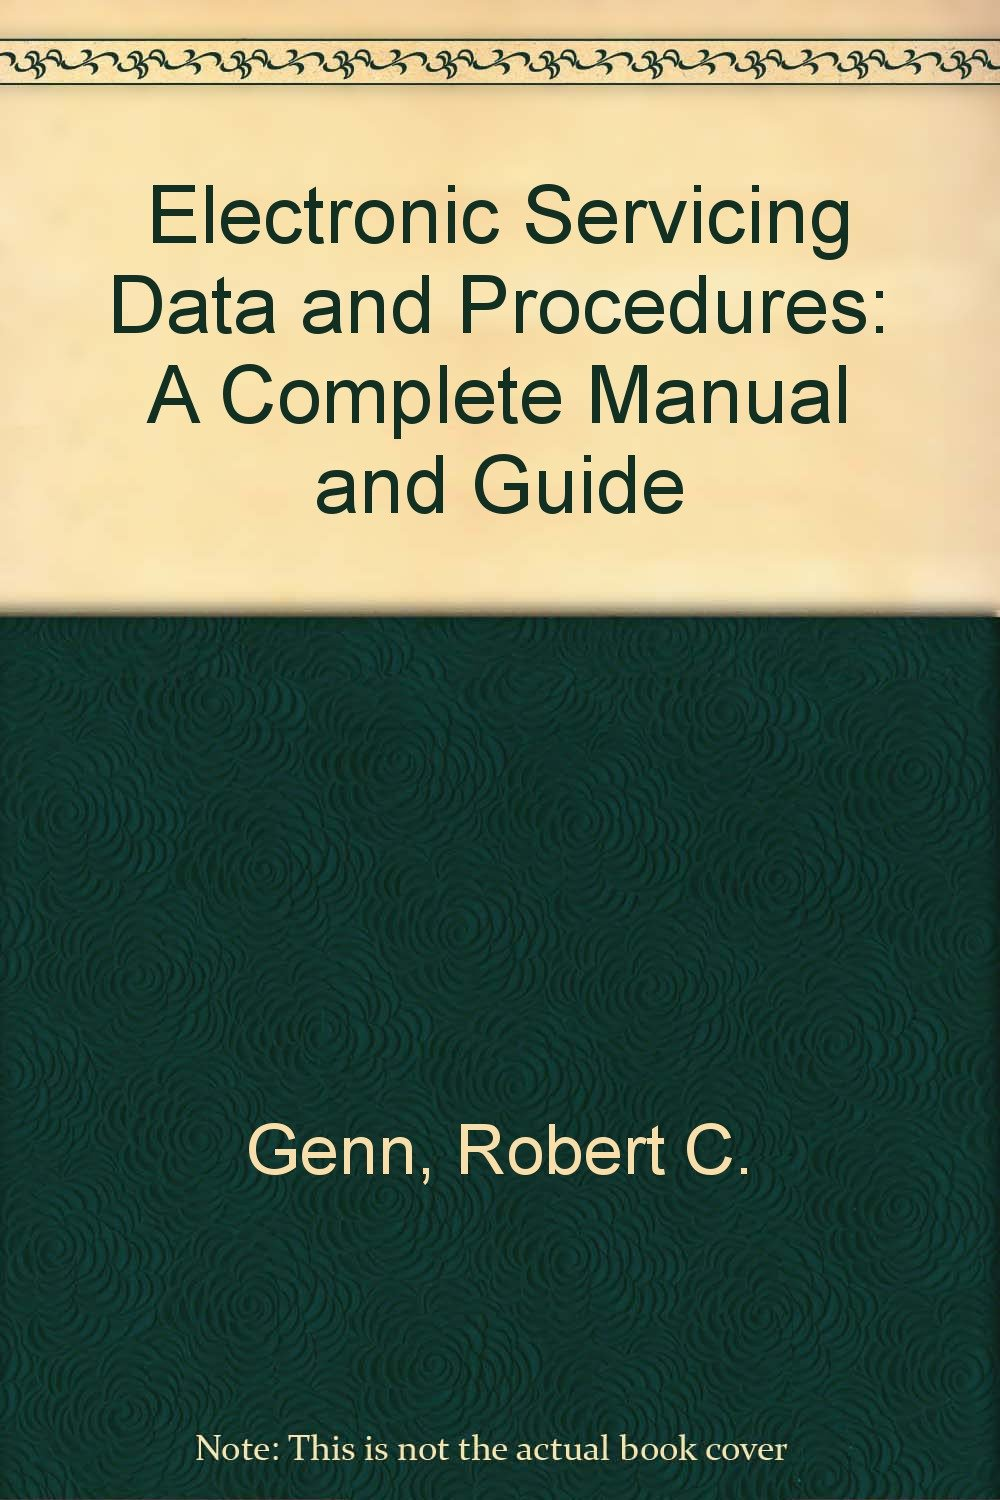 Electronic Servicing Data and Procedures: A Complete Manual and Guide:  Amazon.co.uk: Robert C. Genn: 9780132518512: Books